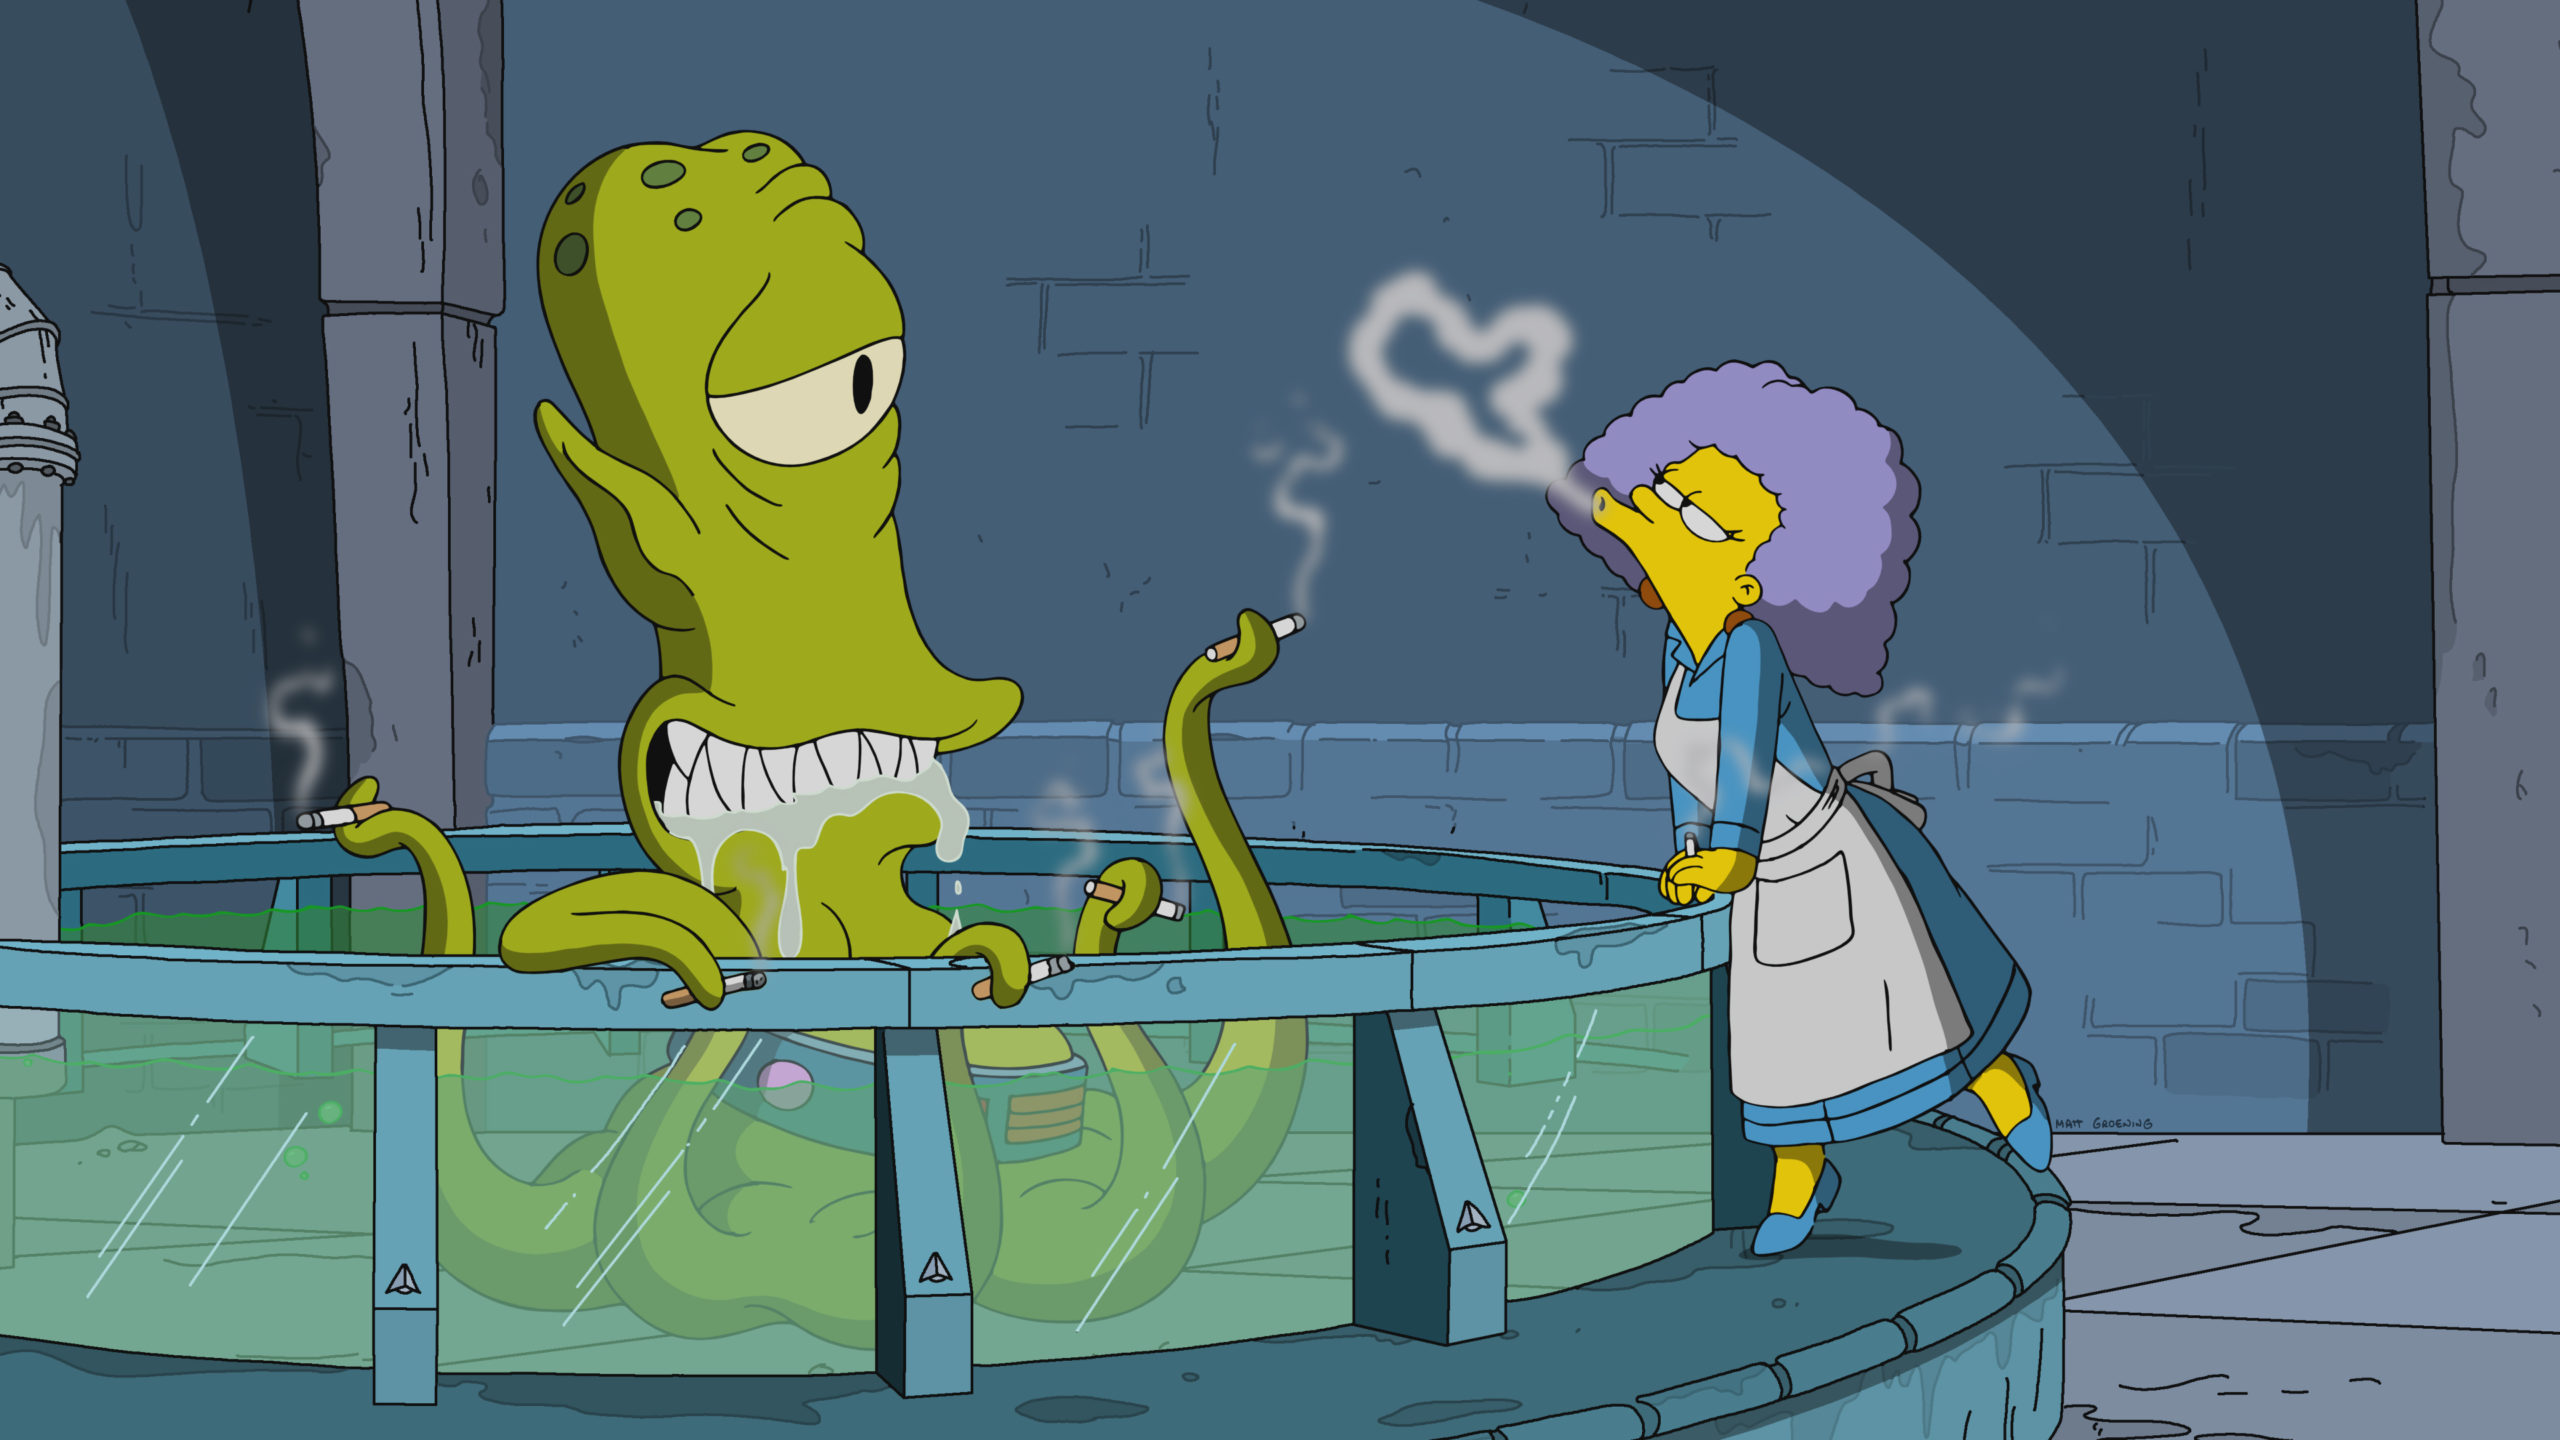 4Los Simpson Porno the simpsons season 31 episode 4 review: treehouse of horror